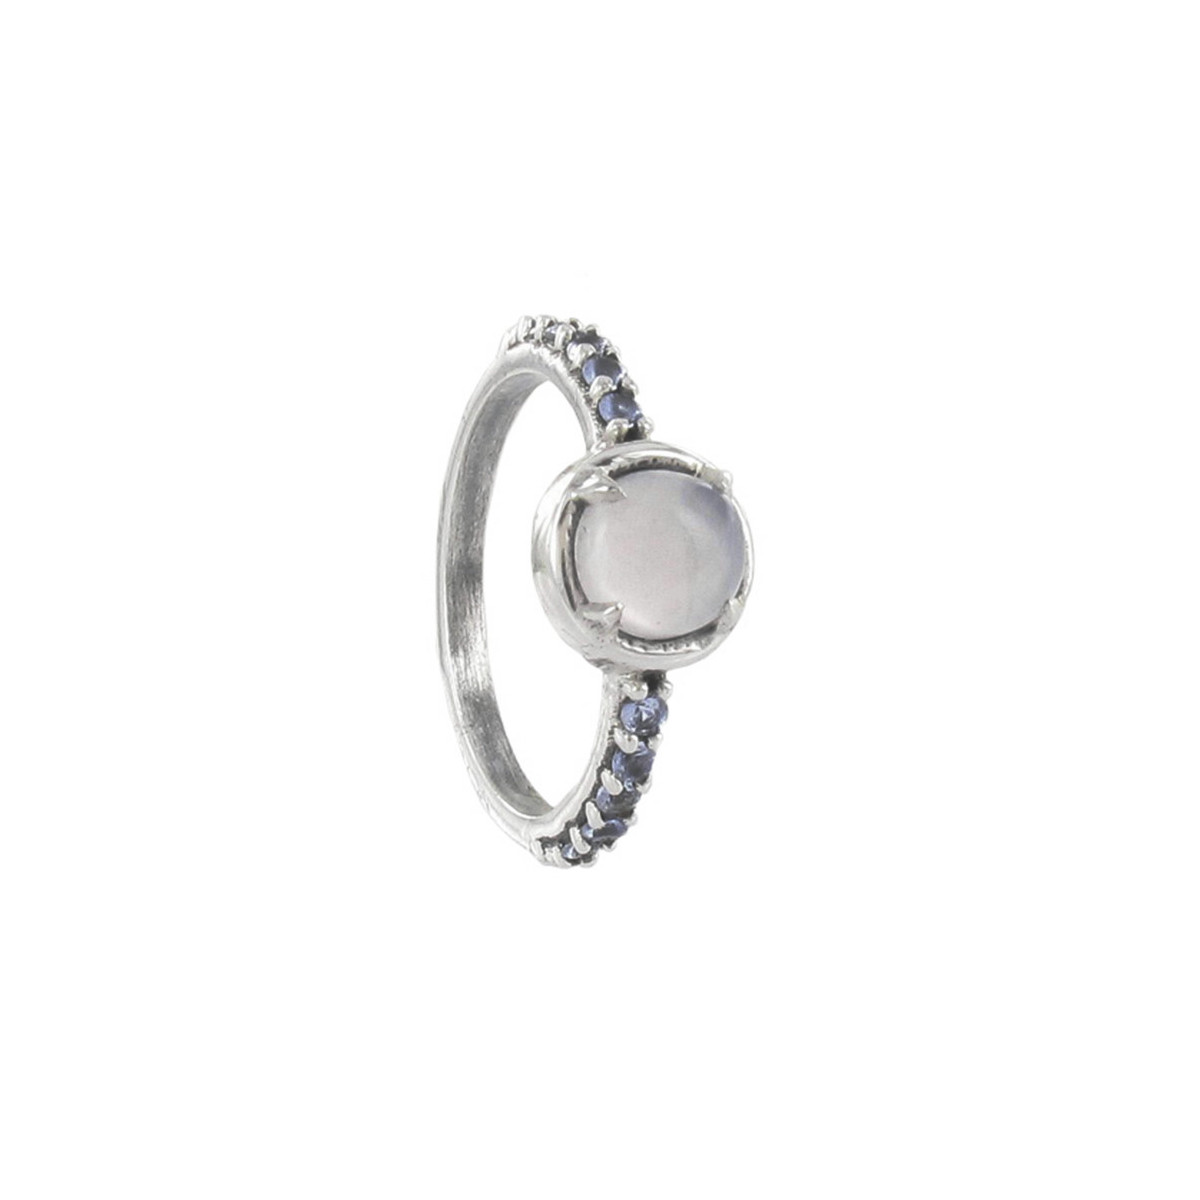 SILVER RING AND BLUE NATURAL STONES